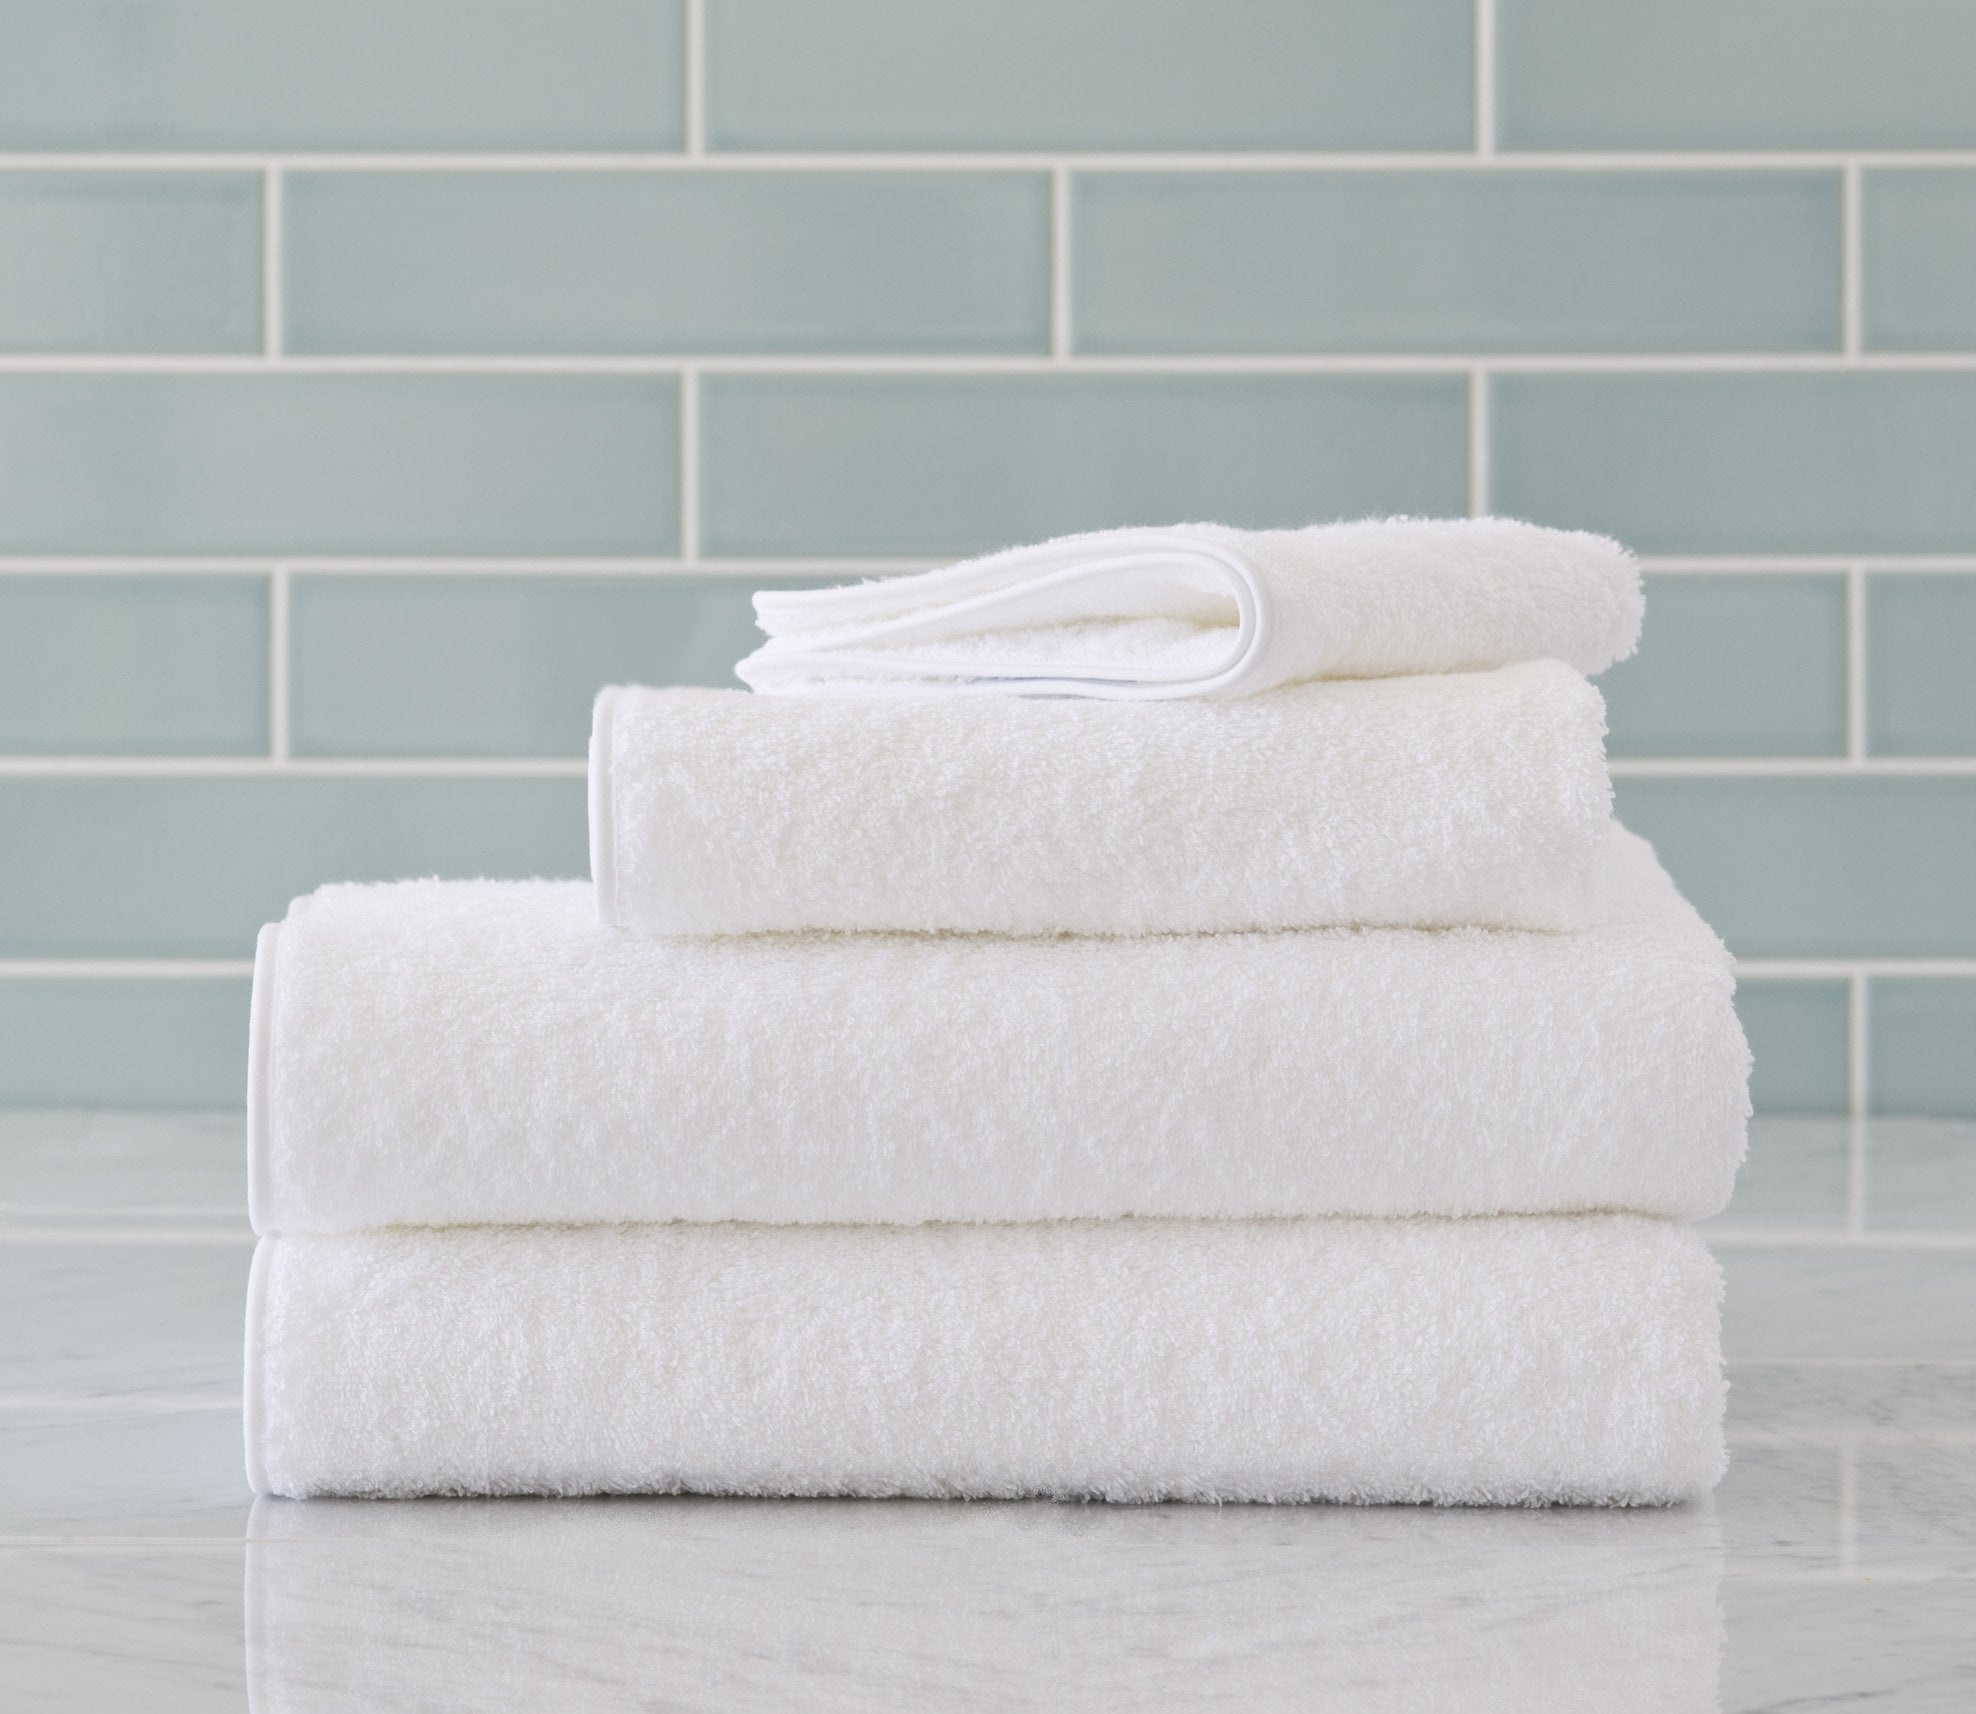 Cairo Bath Towel Ivory Product Image 1